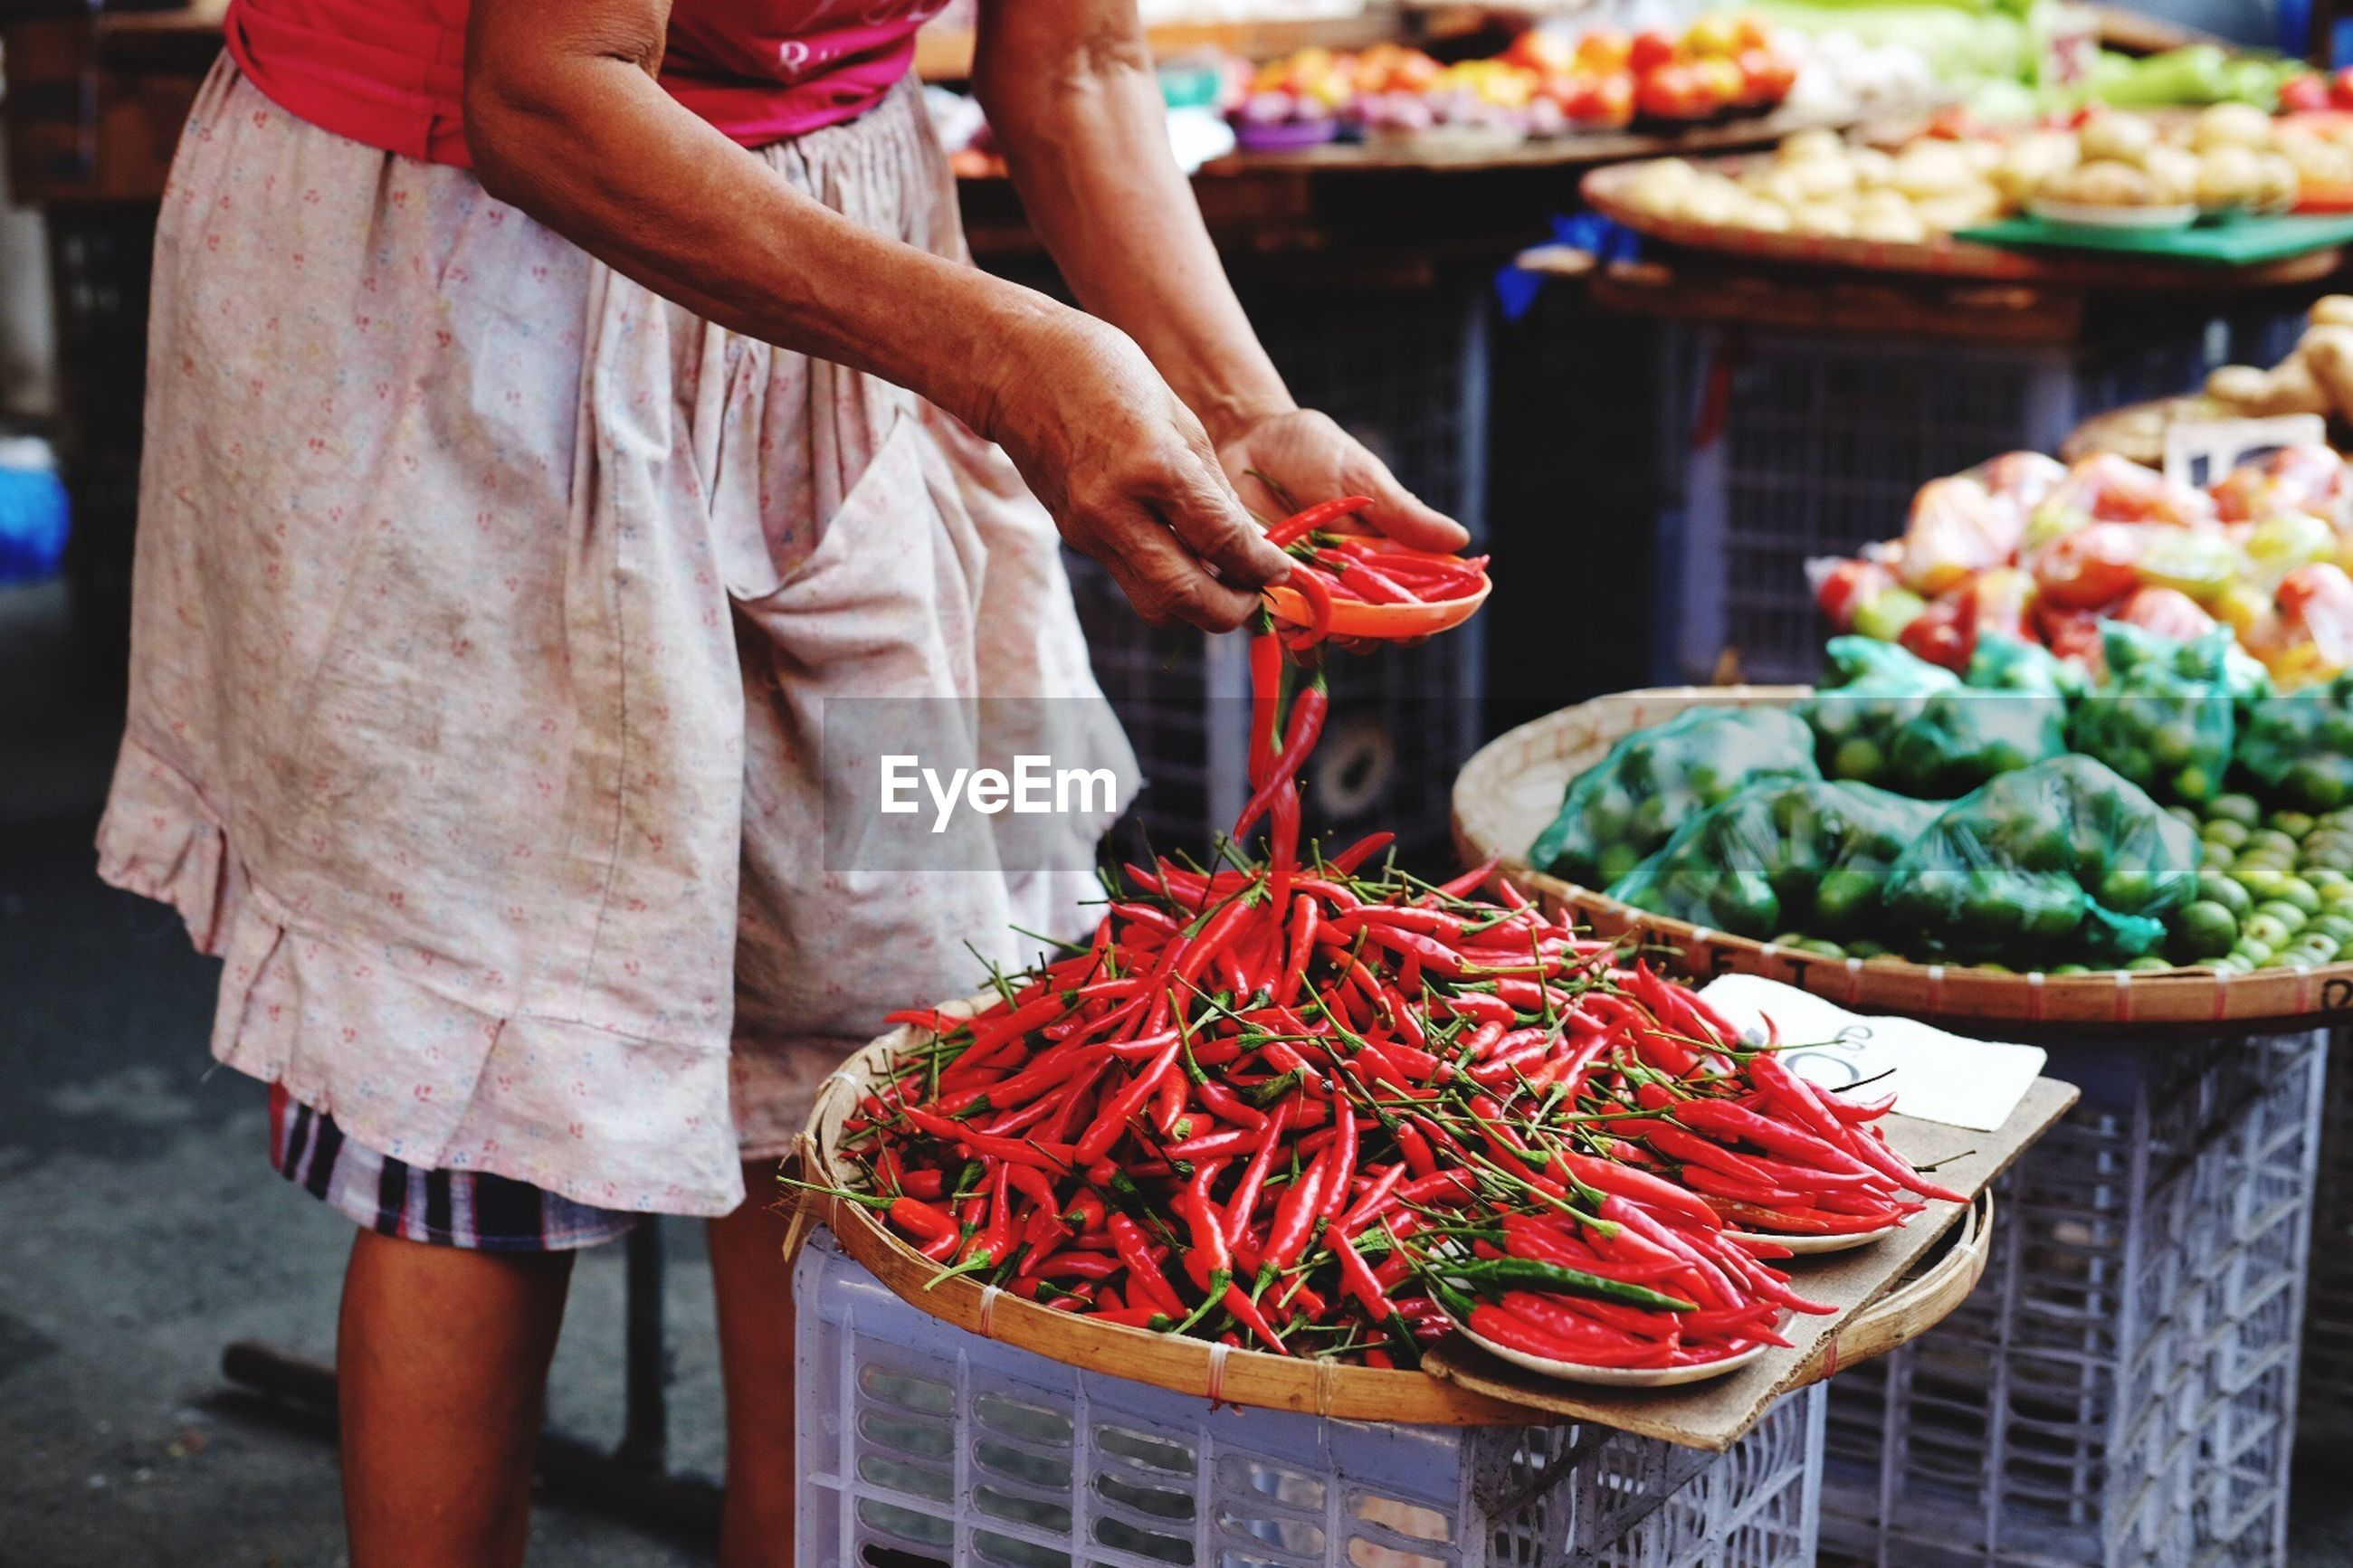 Man holding red chilies at market stall